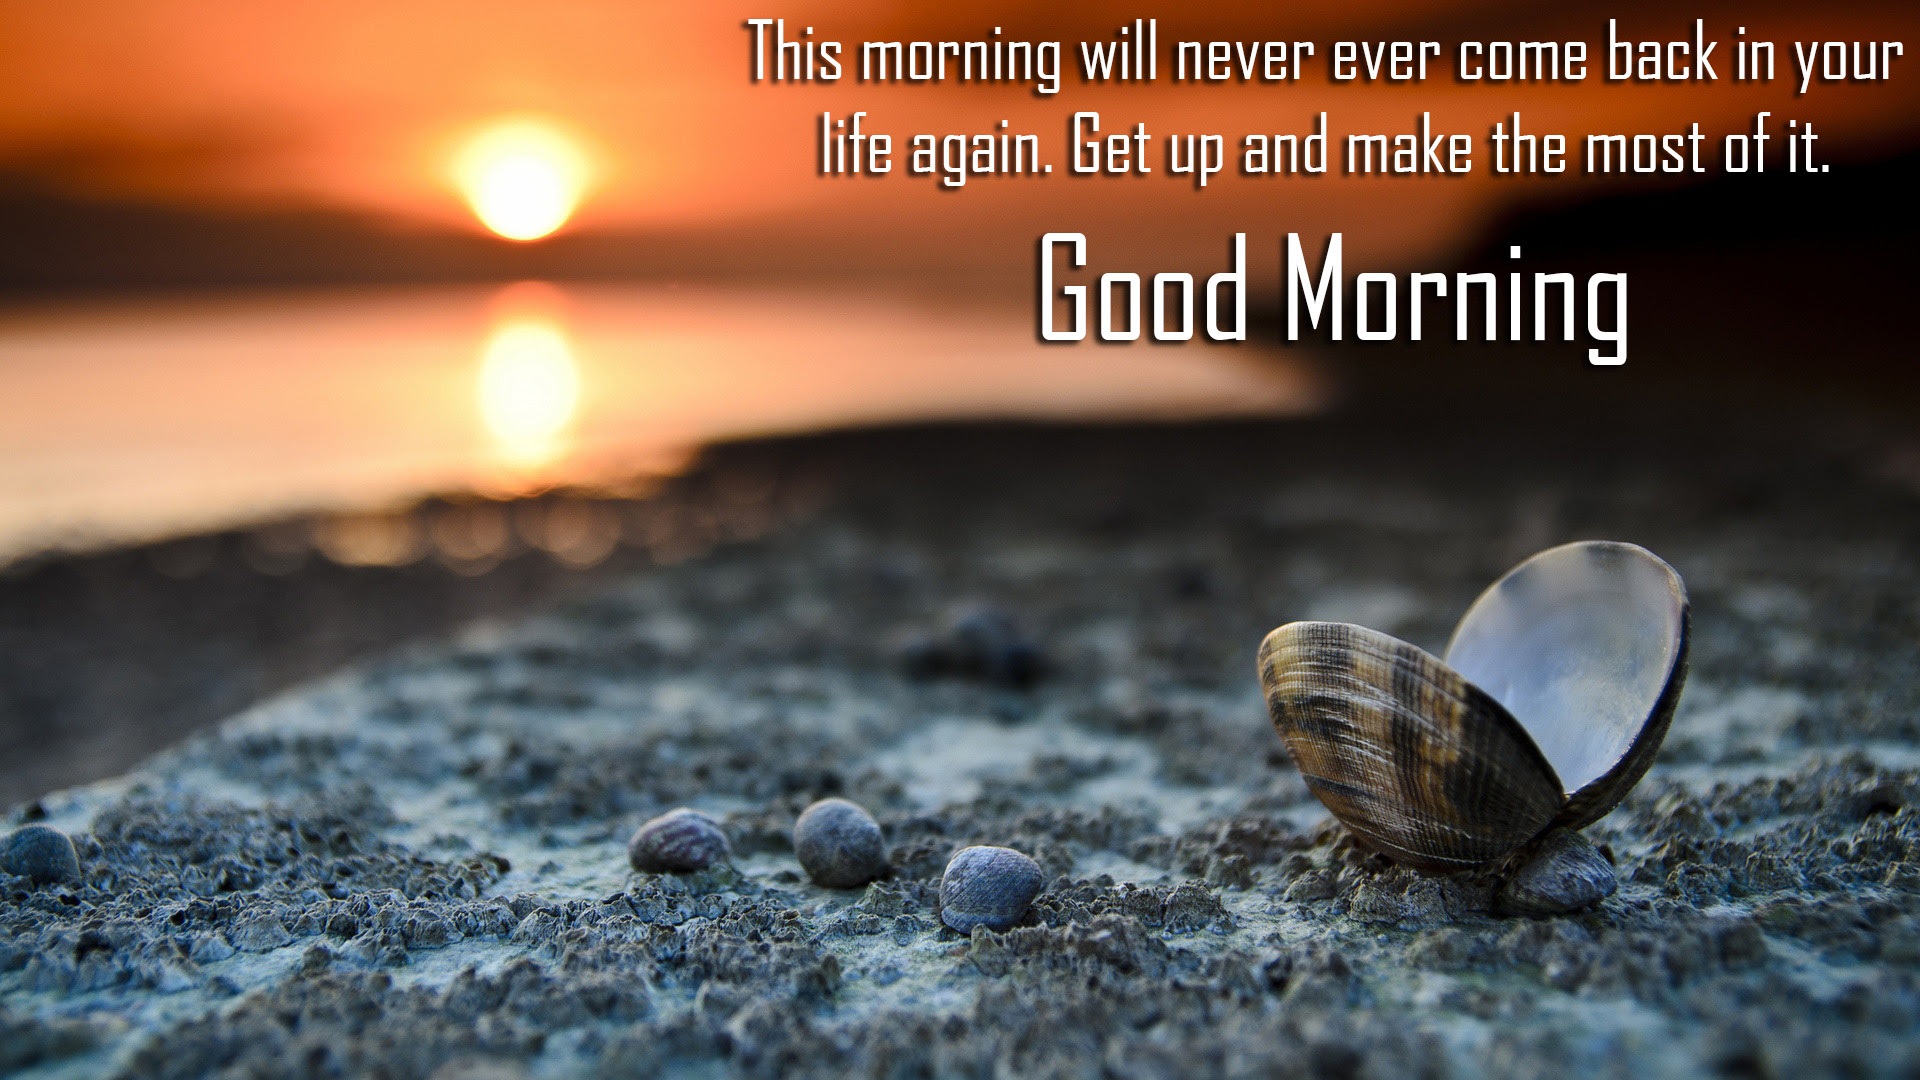 Good Morning Quotes Wallpapers Hd Backgrounds Images Pics Photos